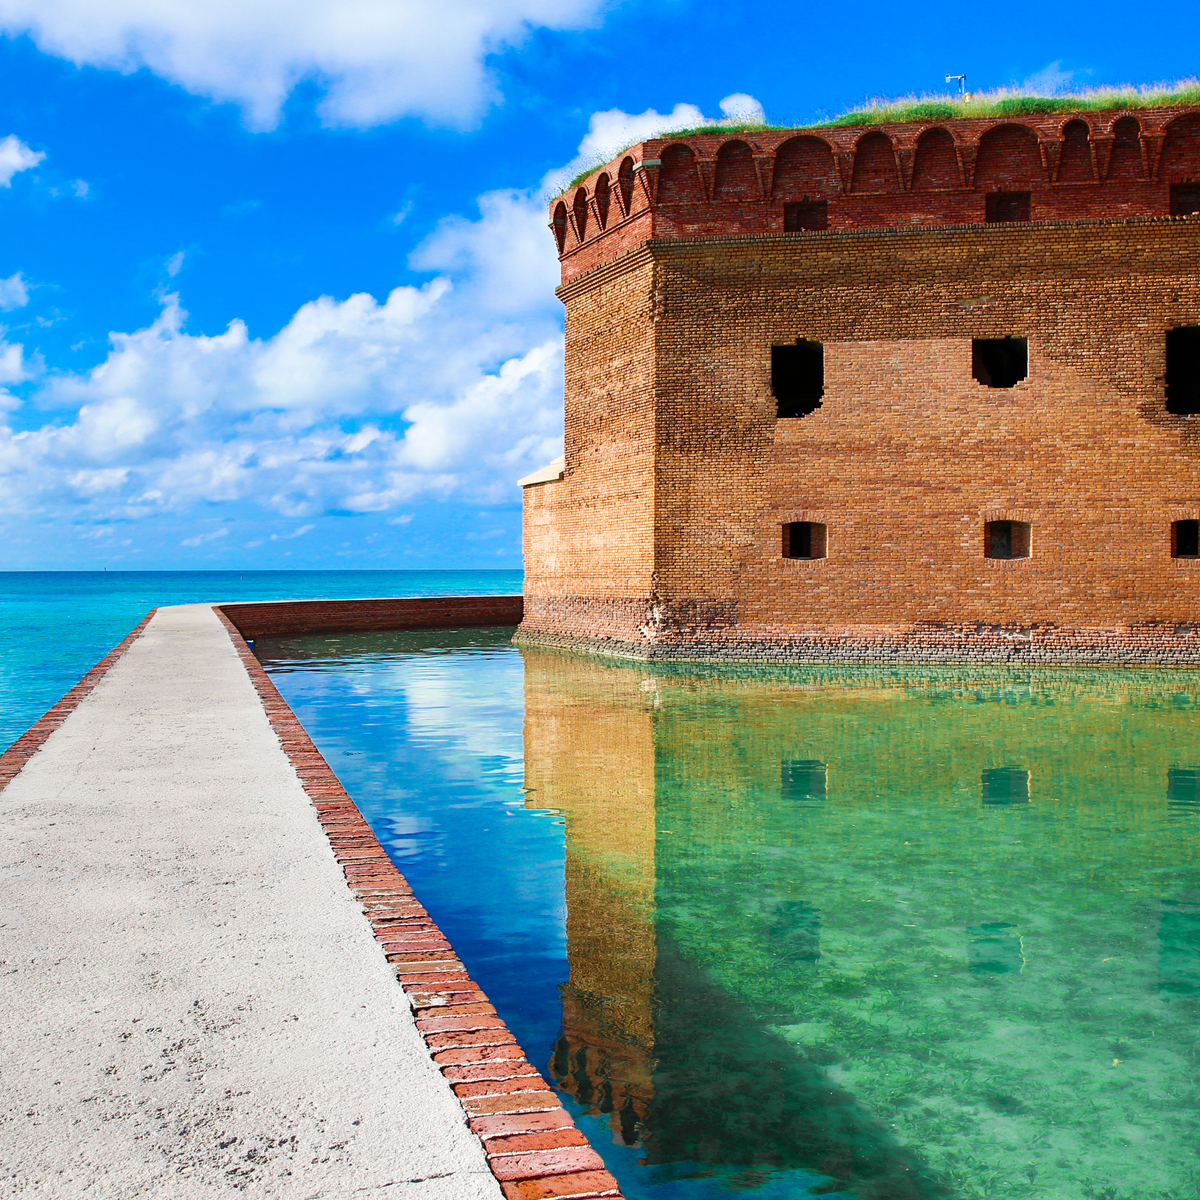 Fort Jefferson, Dry Tortuga National Park